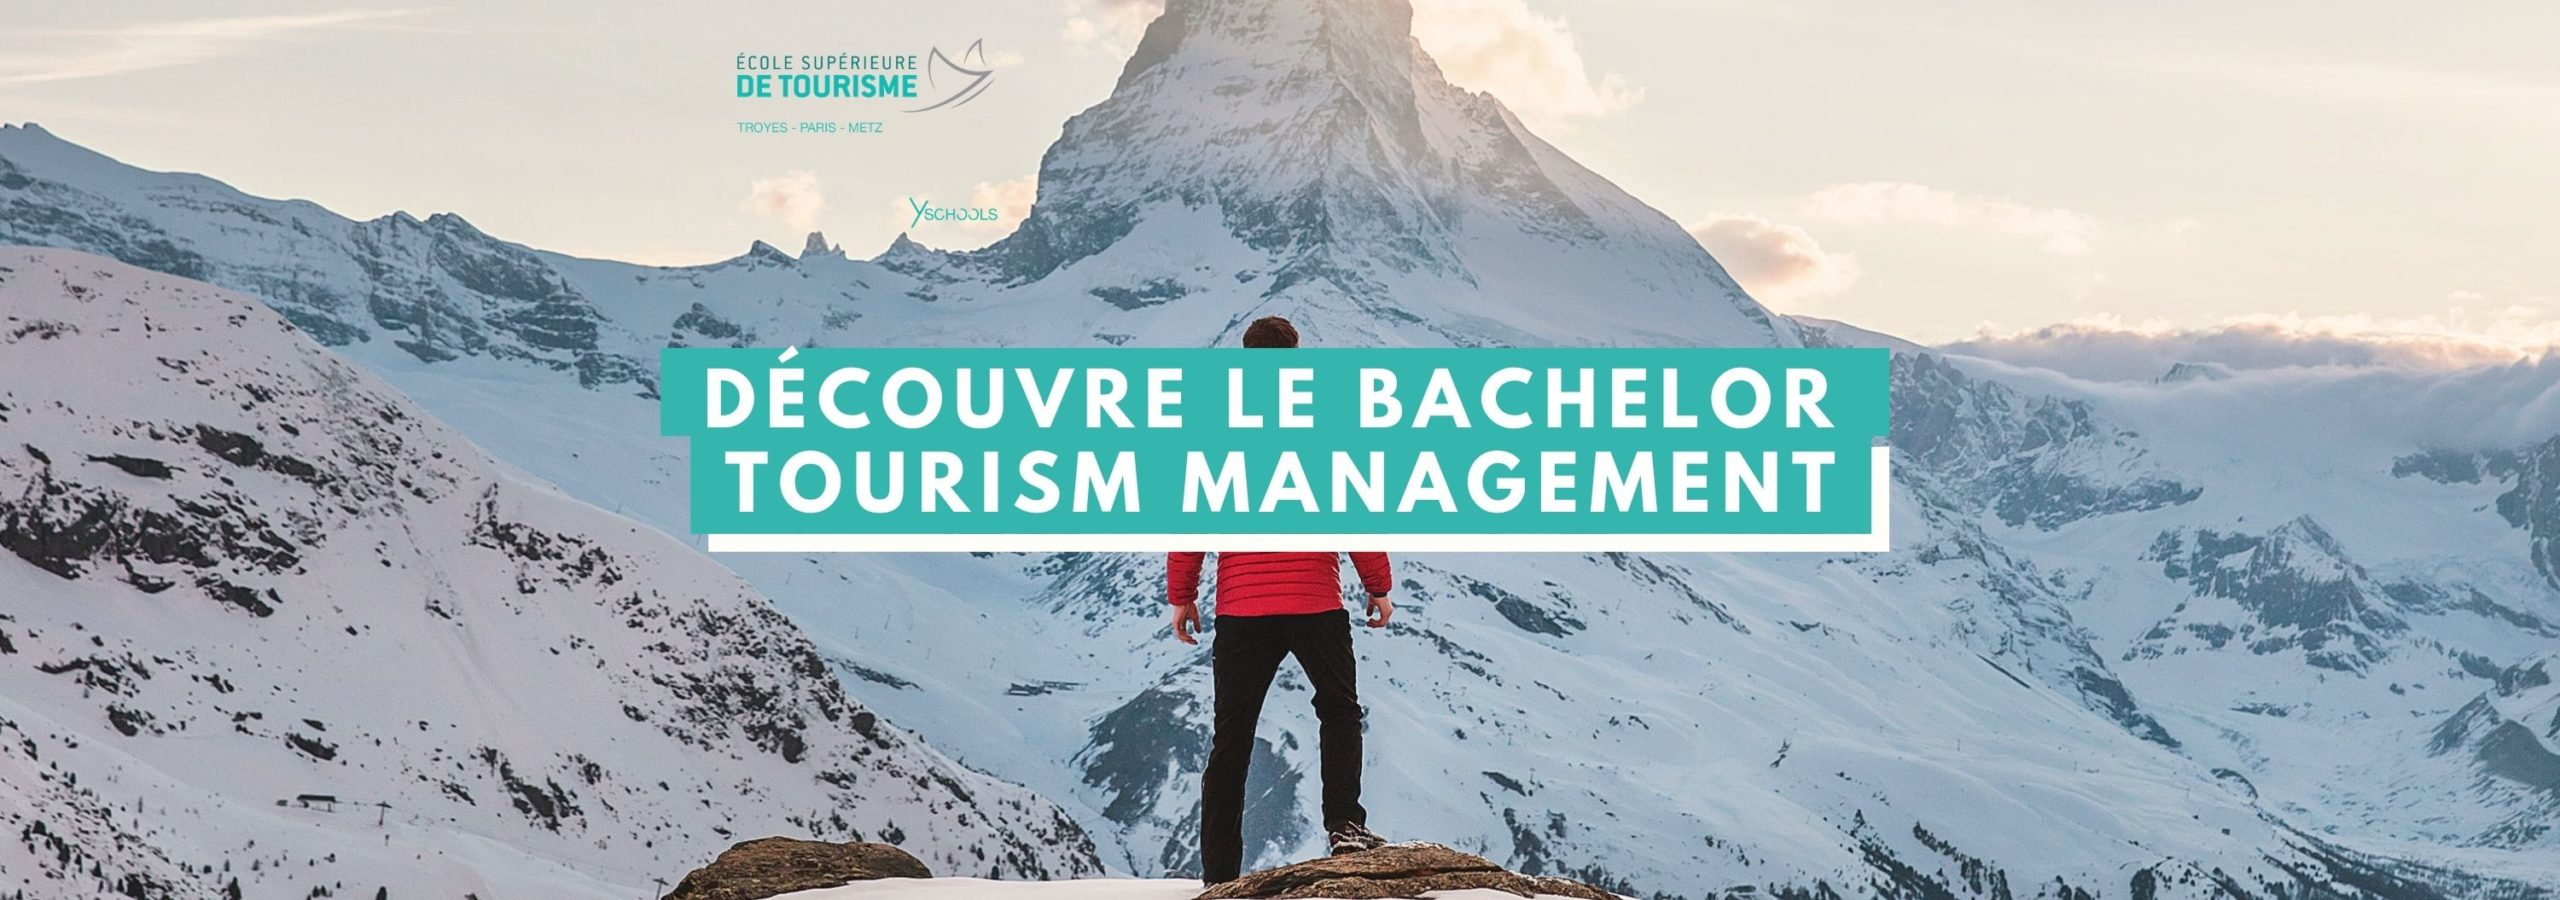 Bachelor Tourism Management